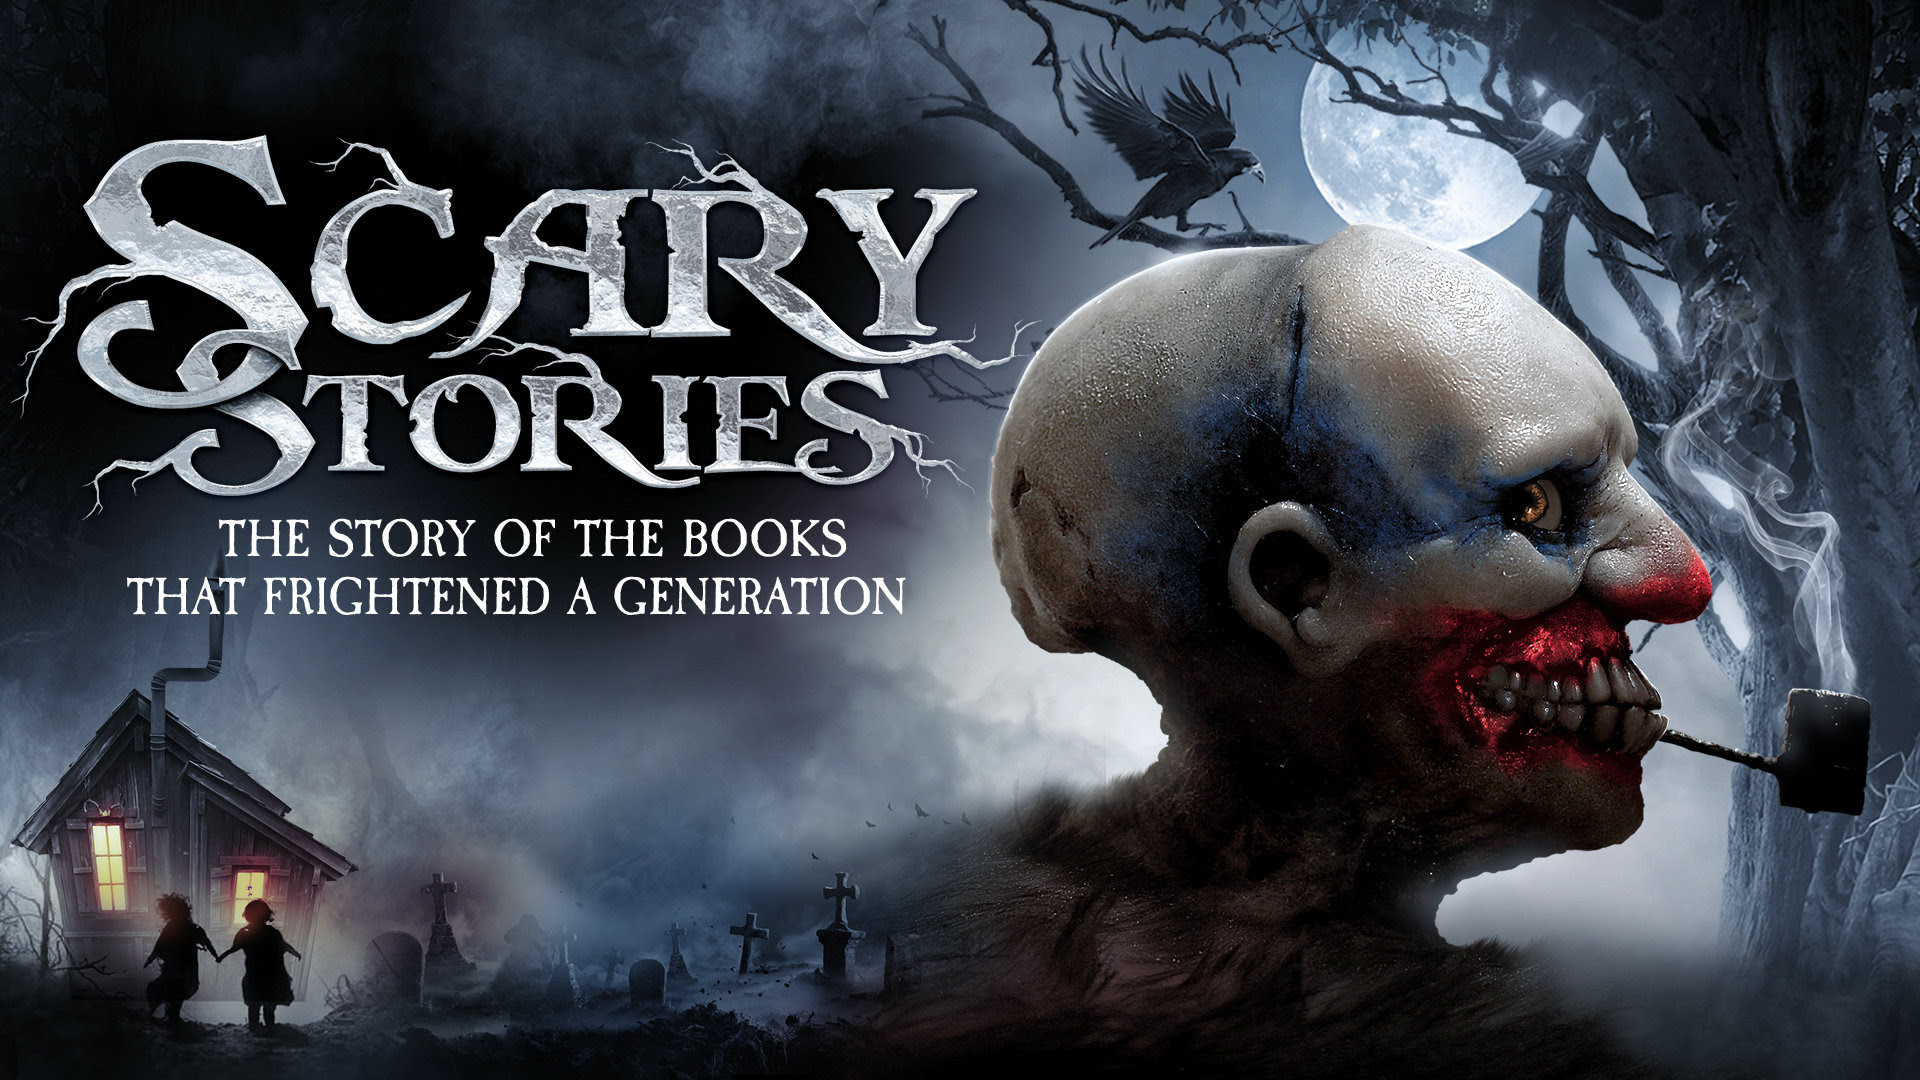 [News] SCARY STORIES Documentary to Arrive This Spring